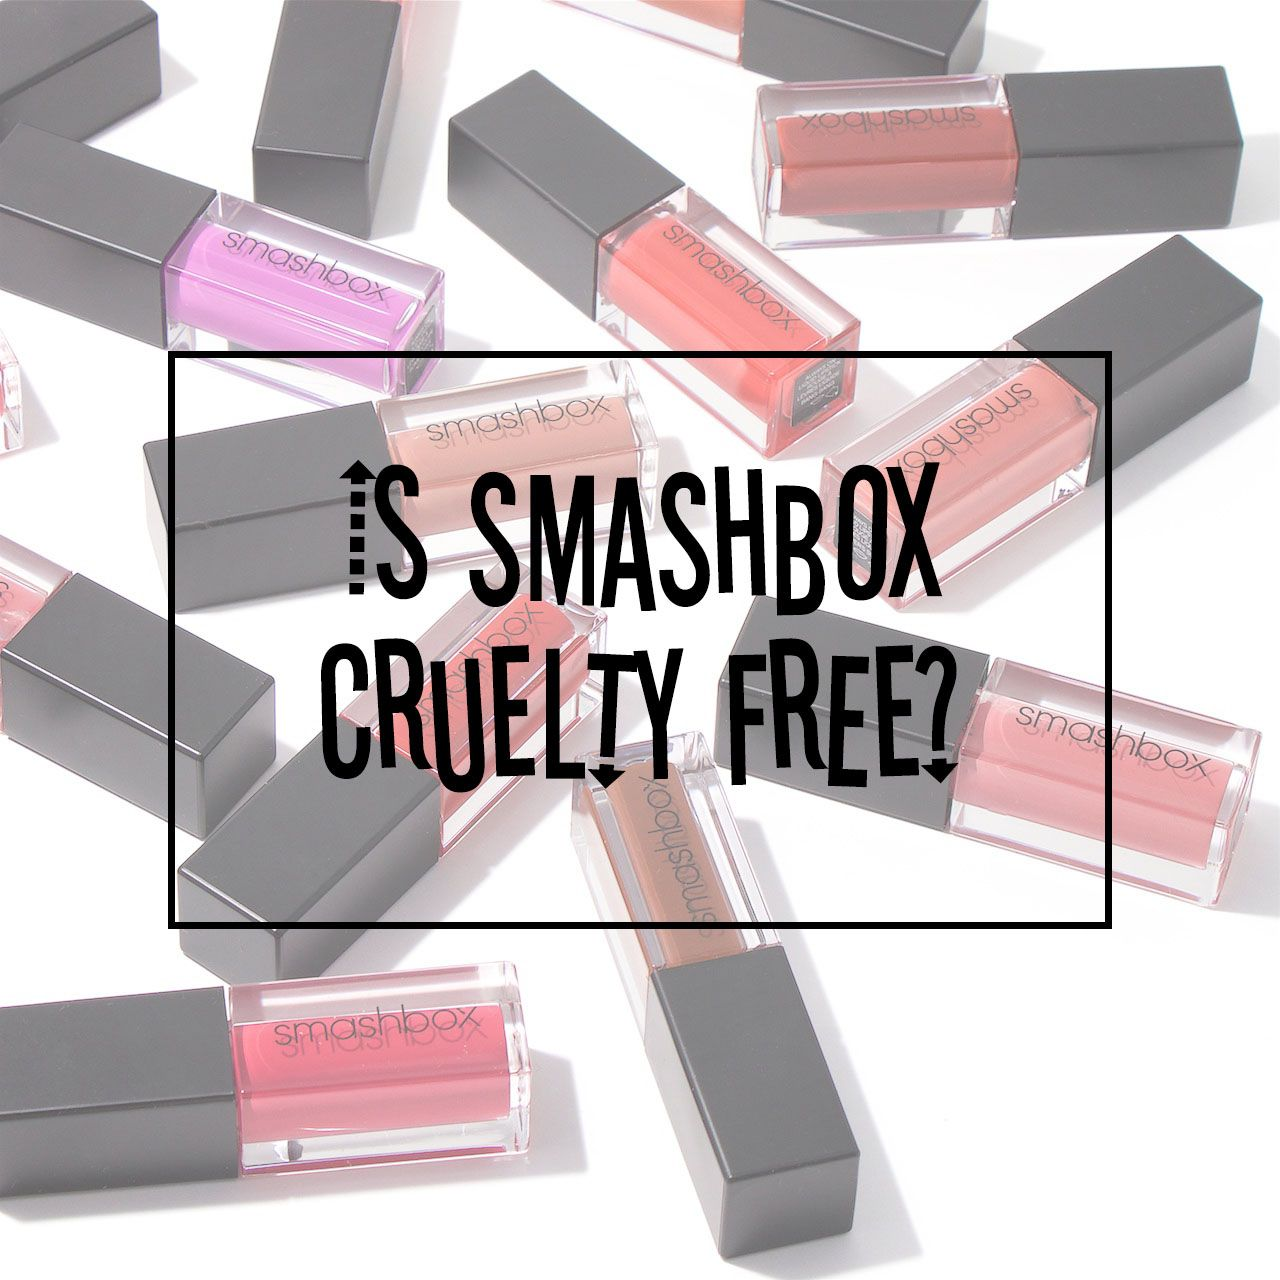 Cruelty Free Brands At Sephora Cruelty Free Brands Cruelty Free Skin Care Cruelty Free Makeup Brands